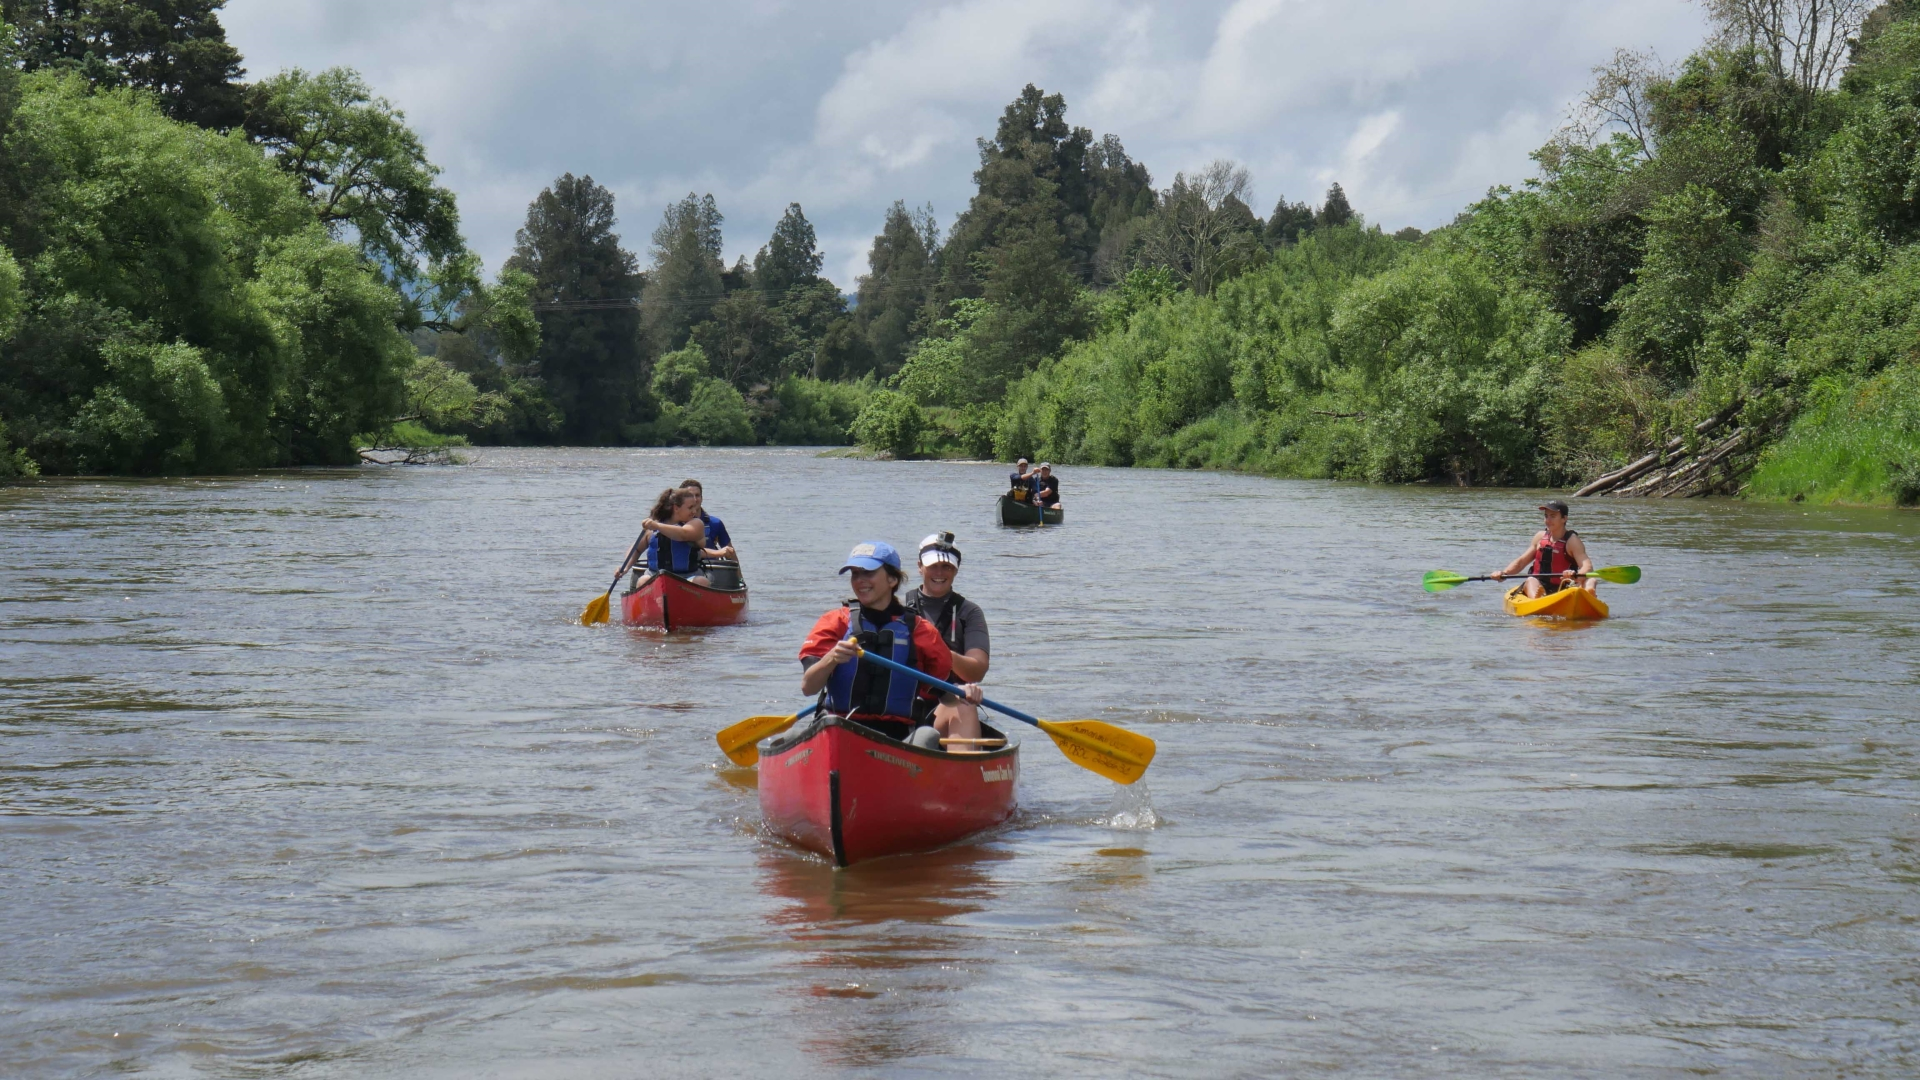 3 canoes paddling down the Whanganui river